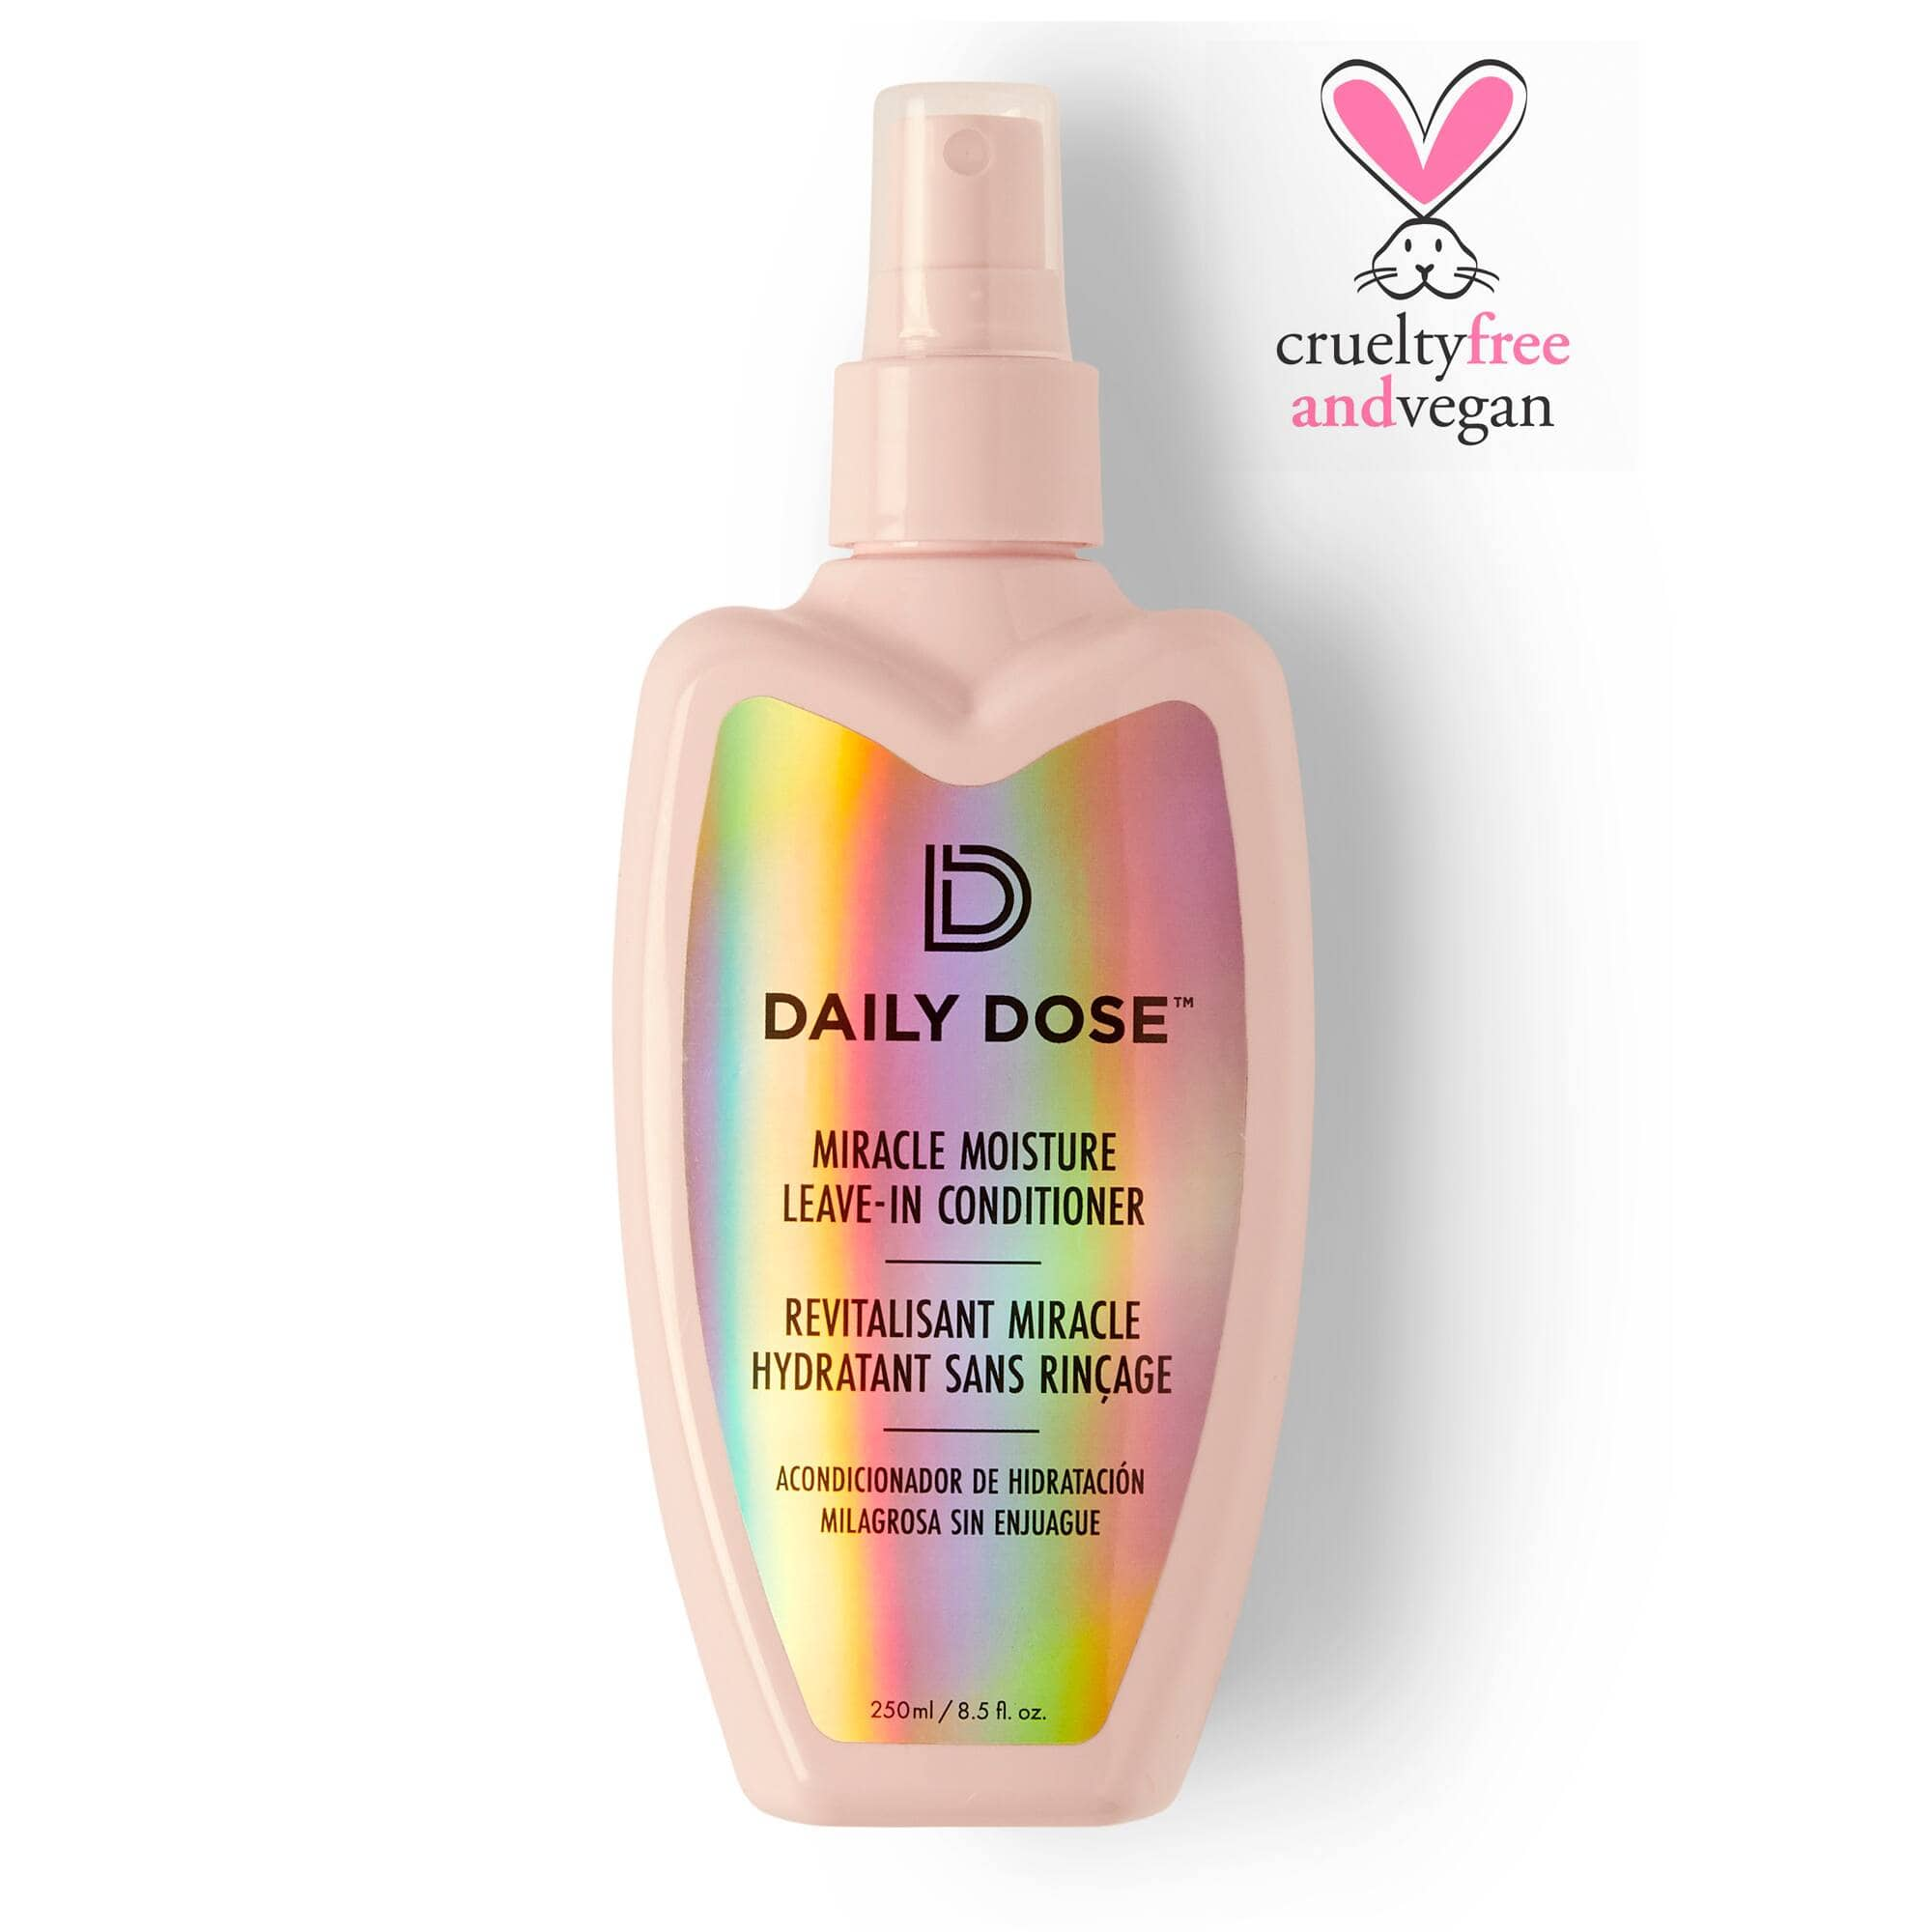 Daily Dose Leave-In Hair Conditioner (Stackable) $11.39 + FS w/ Prime or Orders $25+